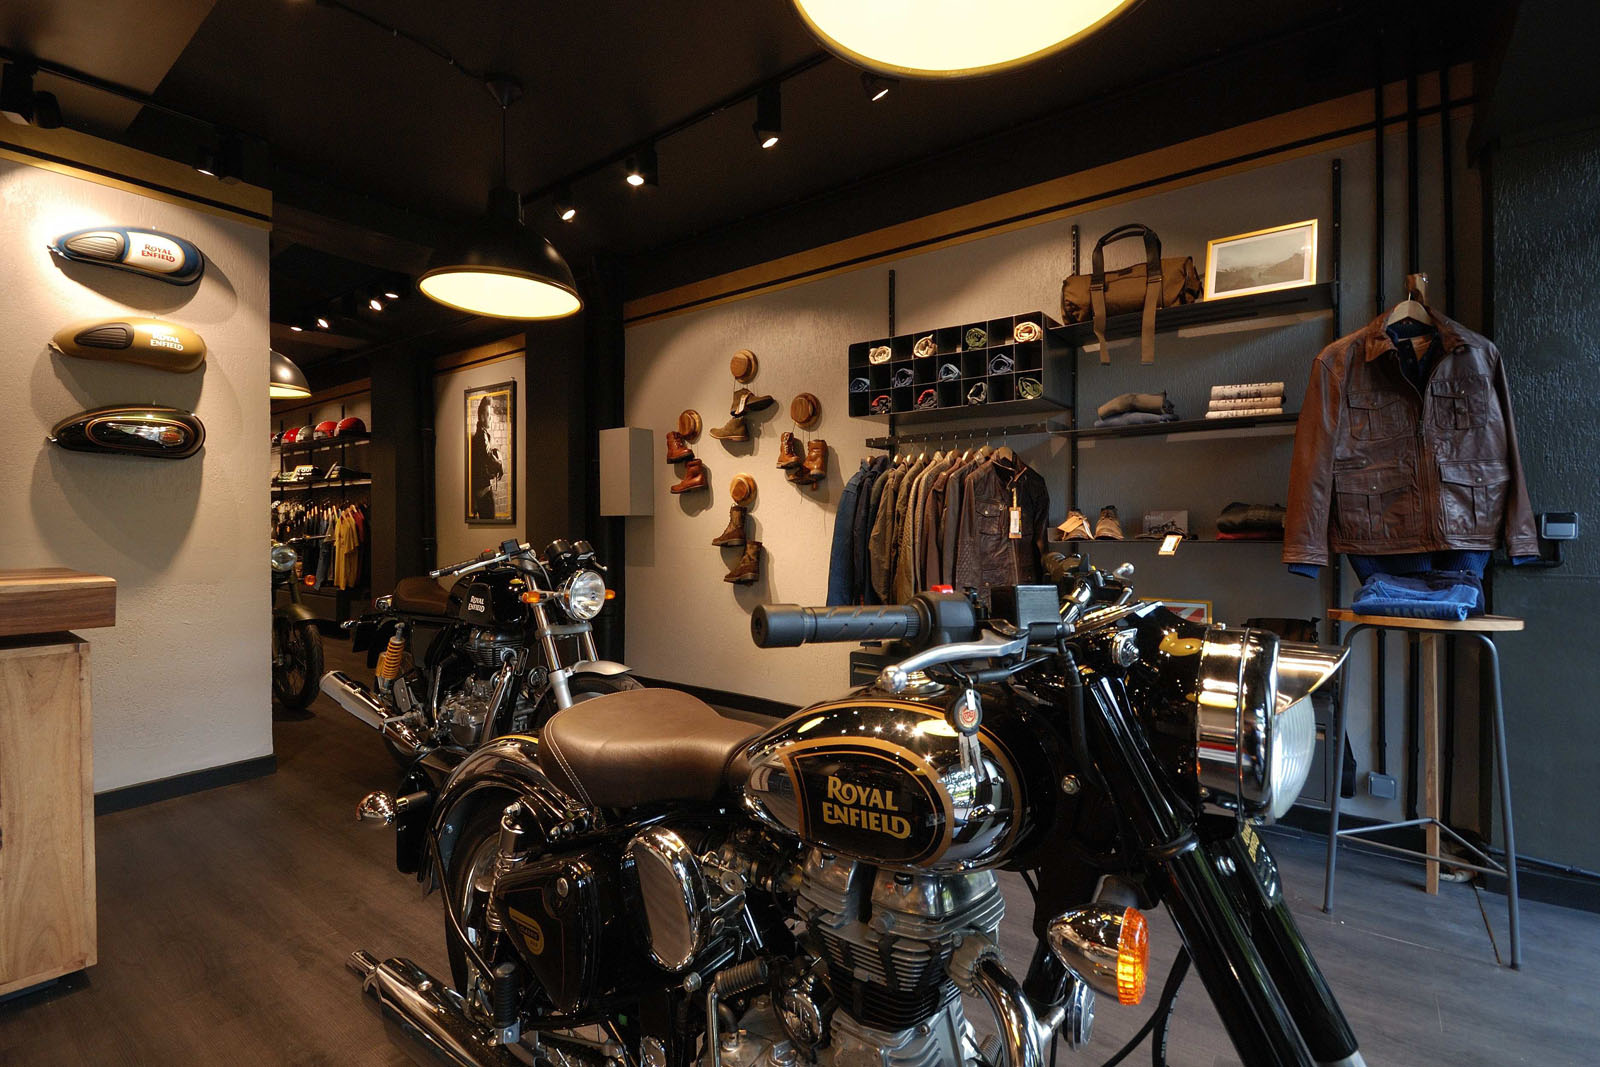 moto vintage royal enfield inaugure sa nouvelle boutique pr s de paris french driver. Black Bedroom Furniture Sets. Home Design Ideas